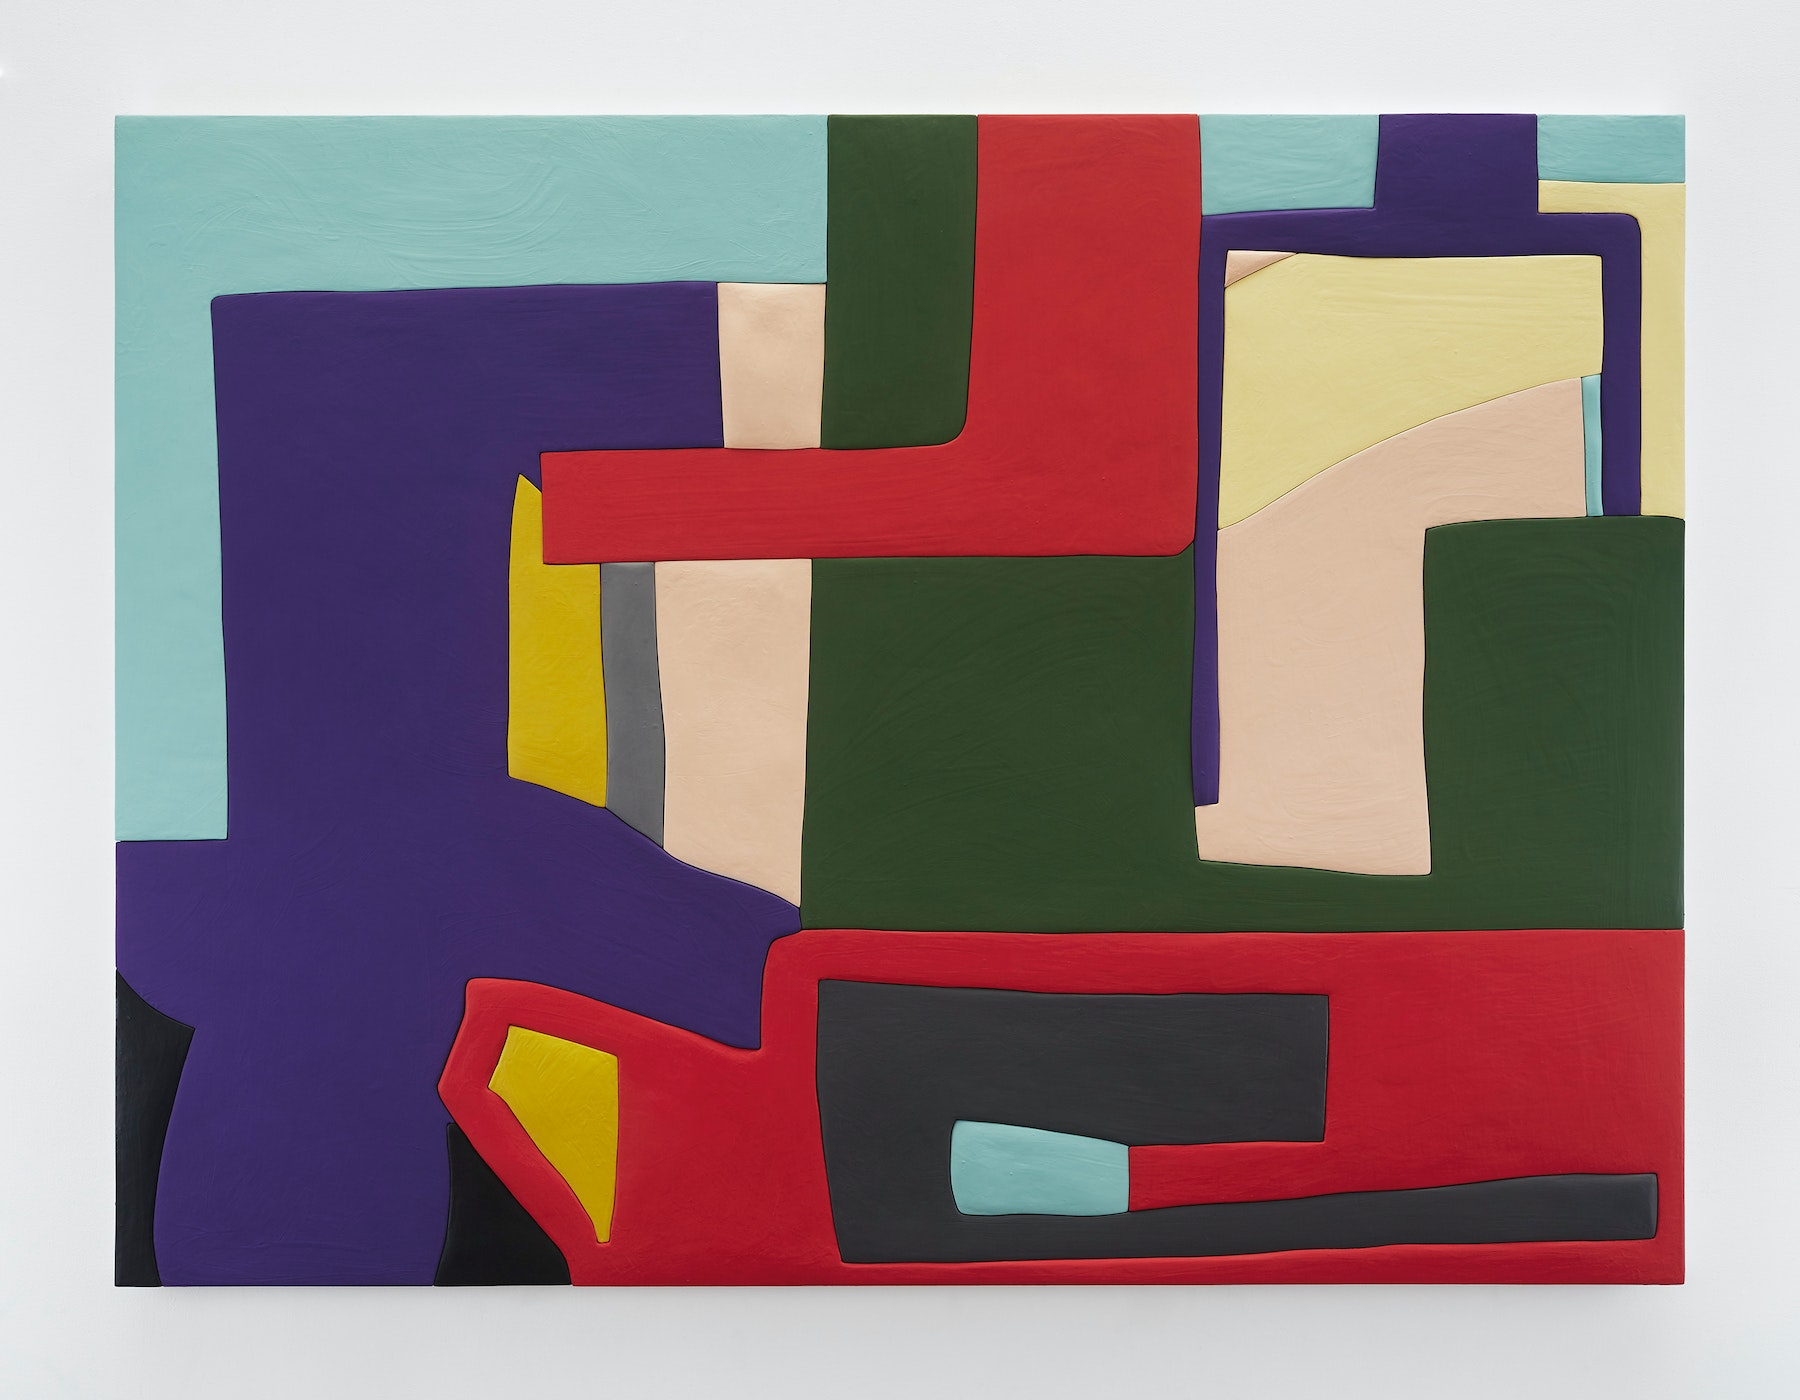 "Sadie Benning ""Untitled 1,"" 2019 Wood, aqua resin, casein, and acrylic gouache 53 x 71"" [HxW] (134.62 x 180.34 cm) Inventory #BEN855 Courtesy of the artist and Vielmetter Los Angeles Photocredit: Chris Austin"